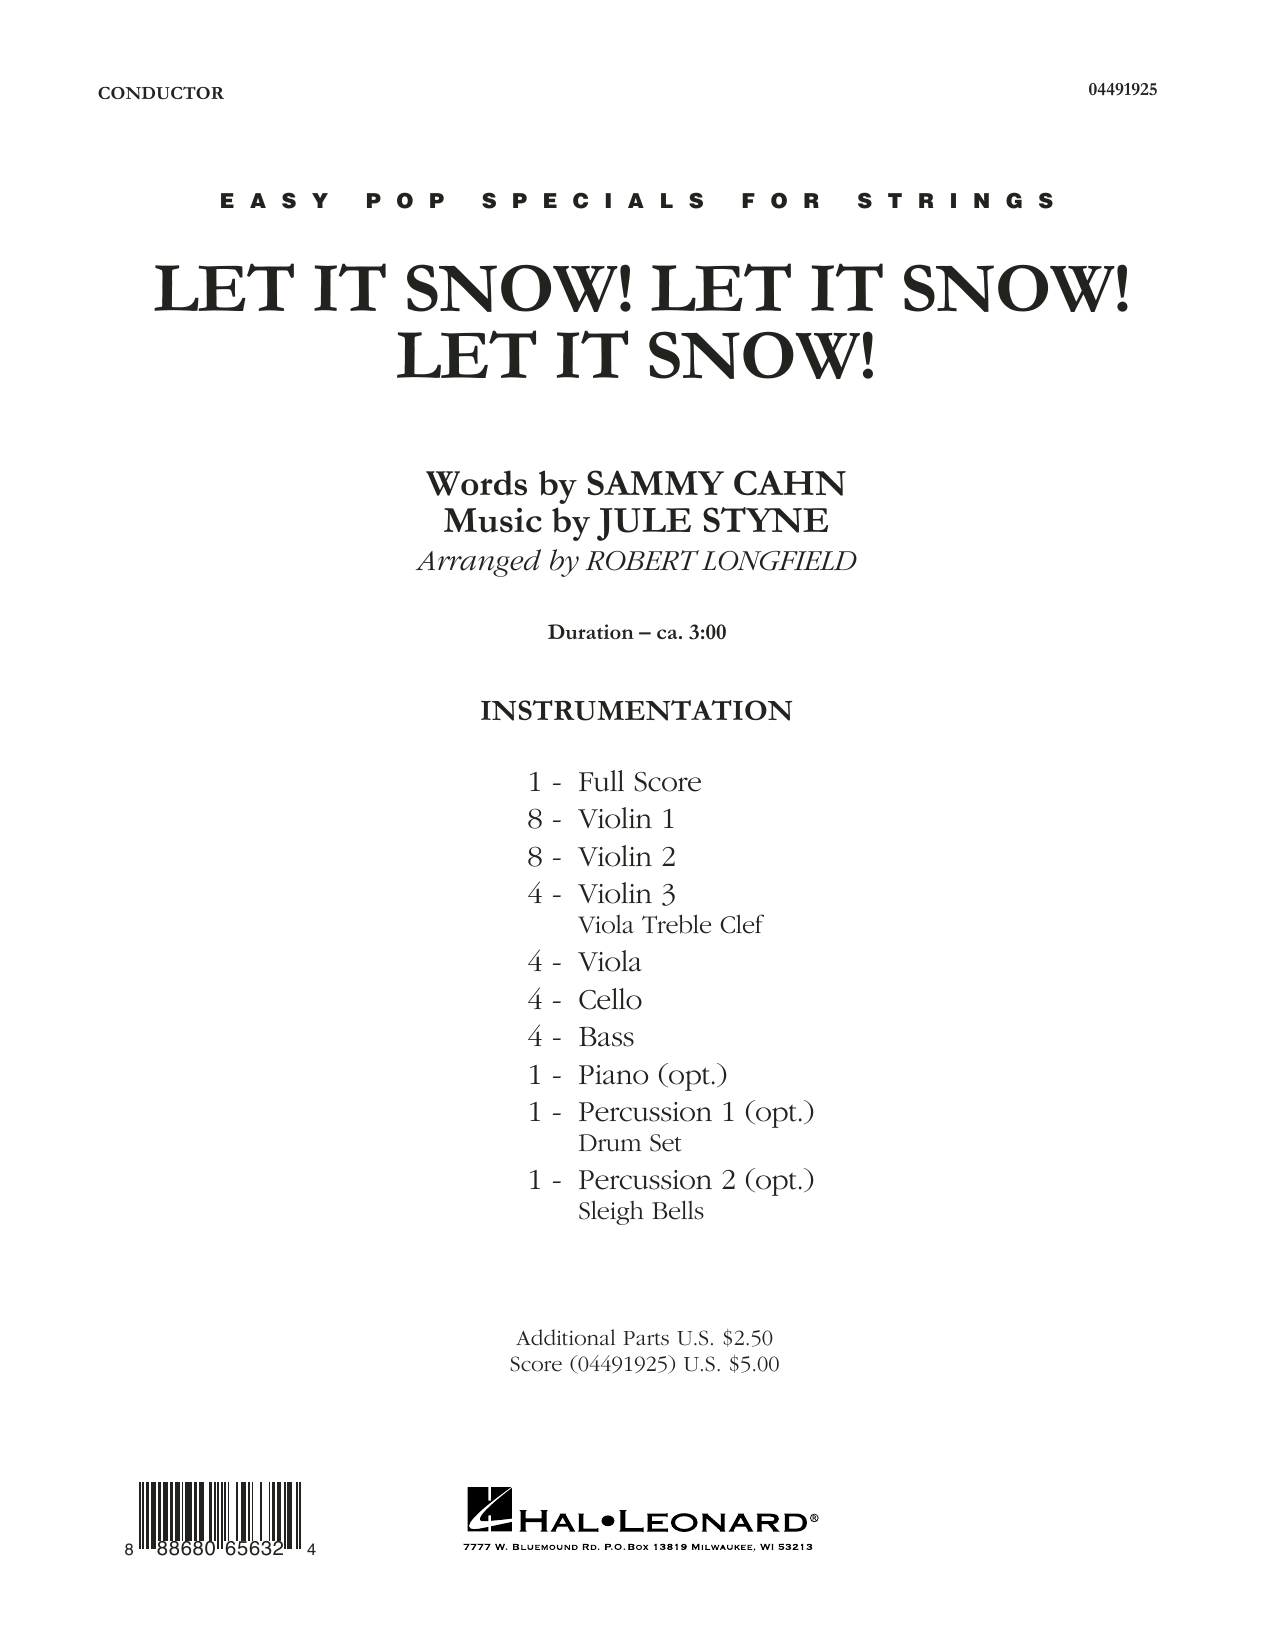 Joe Nichols - Let It Snow! Let It Snow! Let It Snow! - Conductor Score (Full Score)